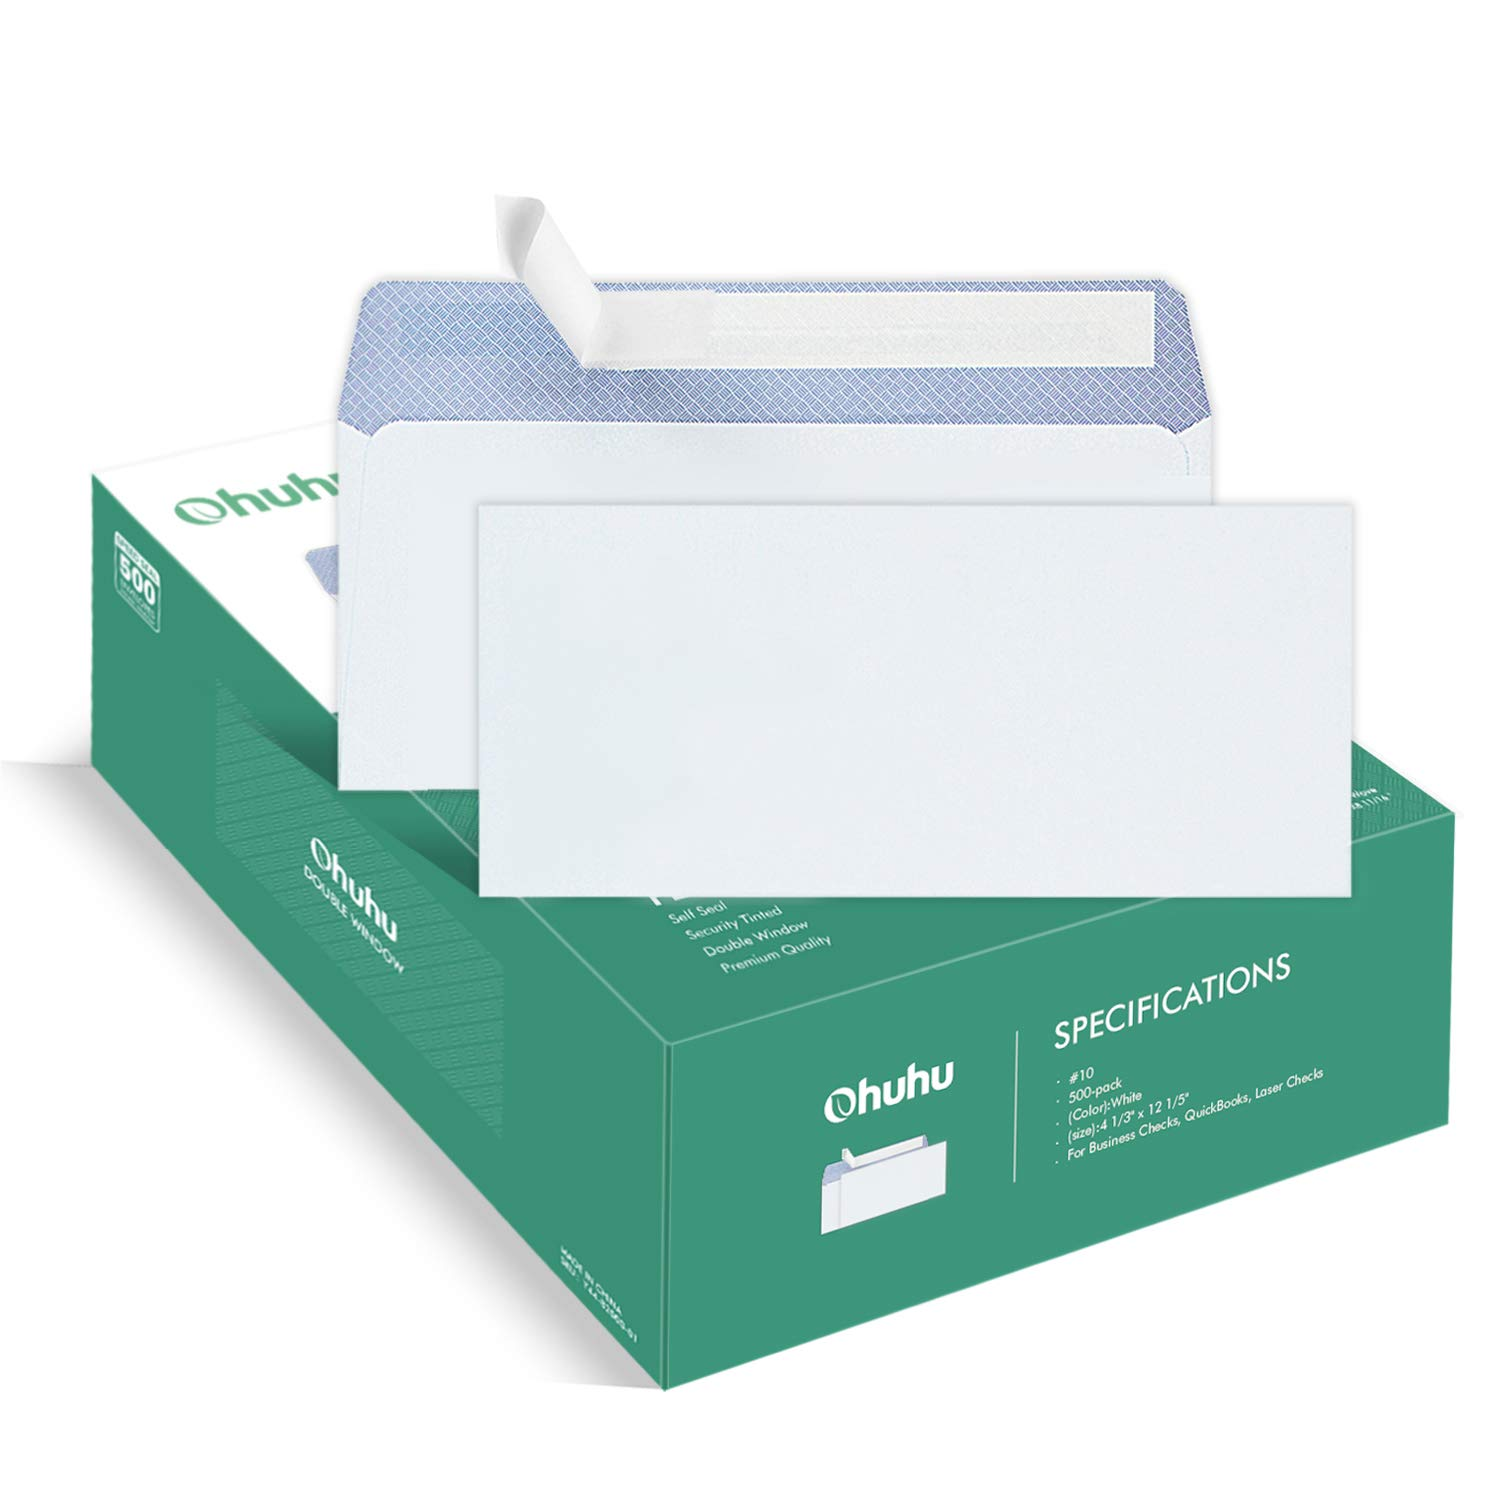 Ohuhu 500 Pack #10 Envelopes SELF Seal Business Envelope Windowless Design, Security Tint Pattern with A Letter Opener for Secure Mailing, Invoices, Statements & Legal Document, 4-1/8 x 9-1/2 Inches